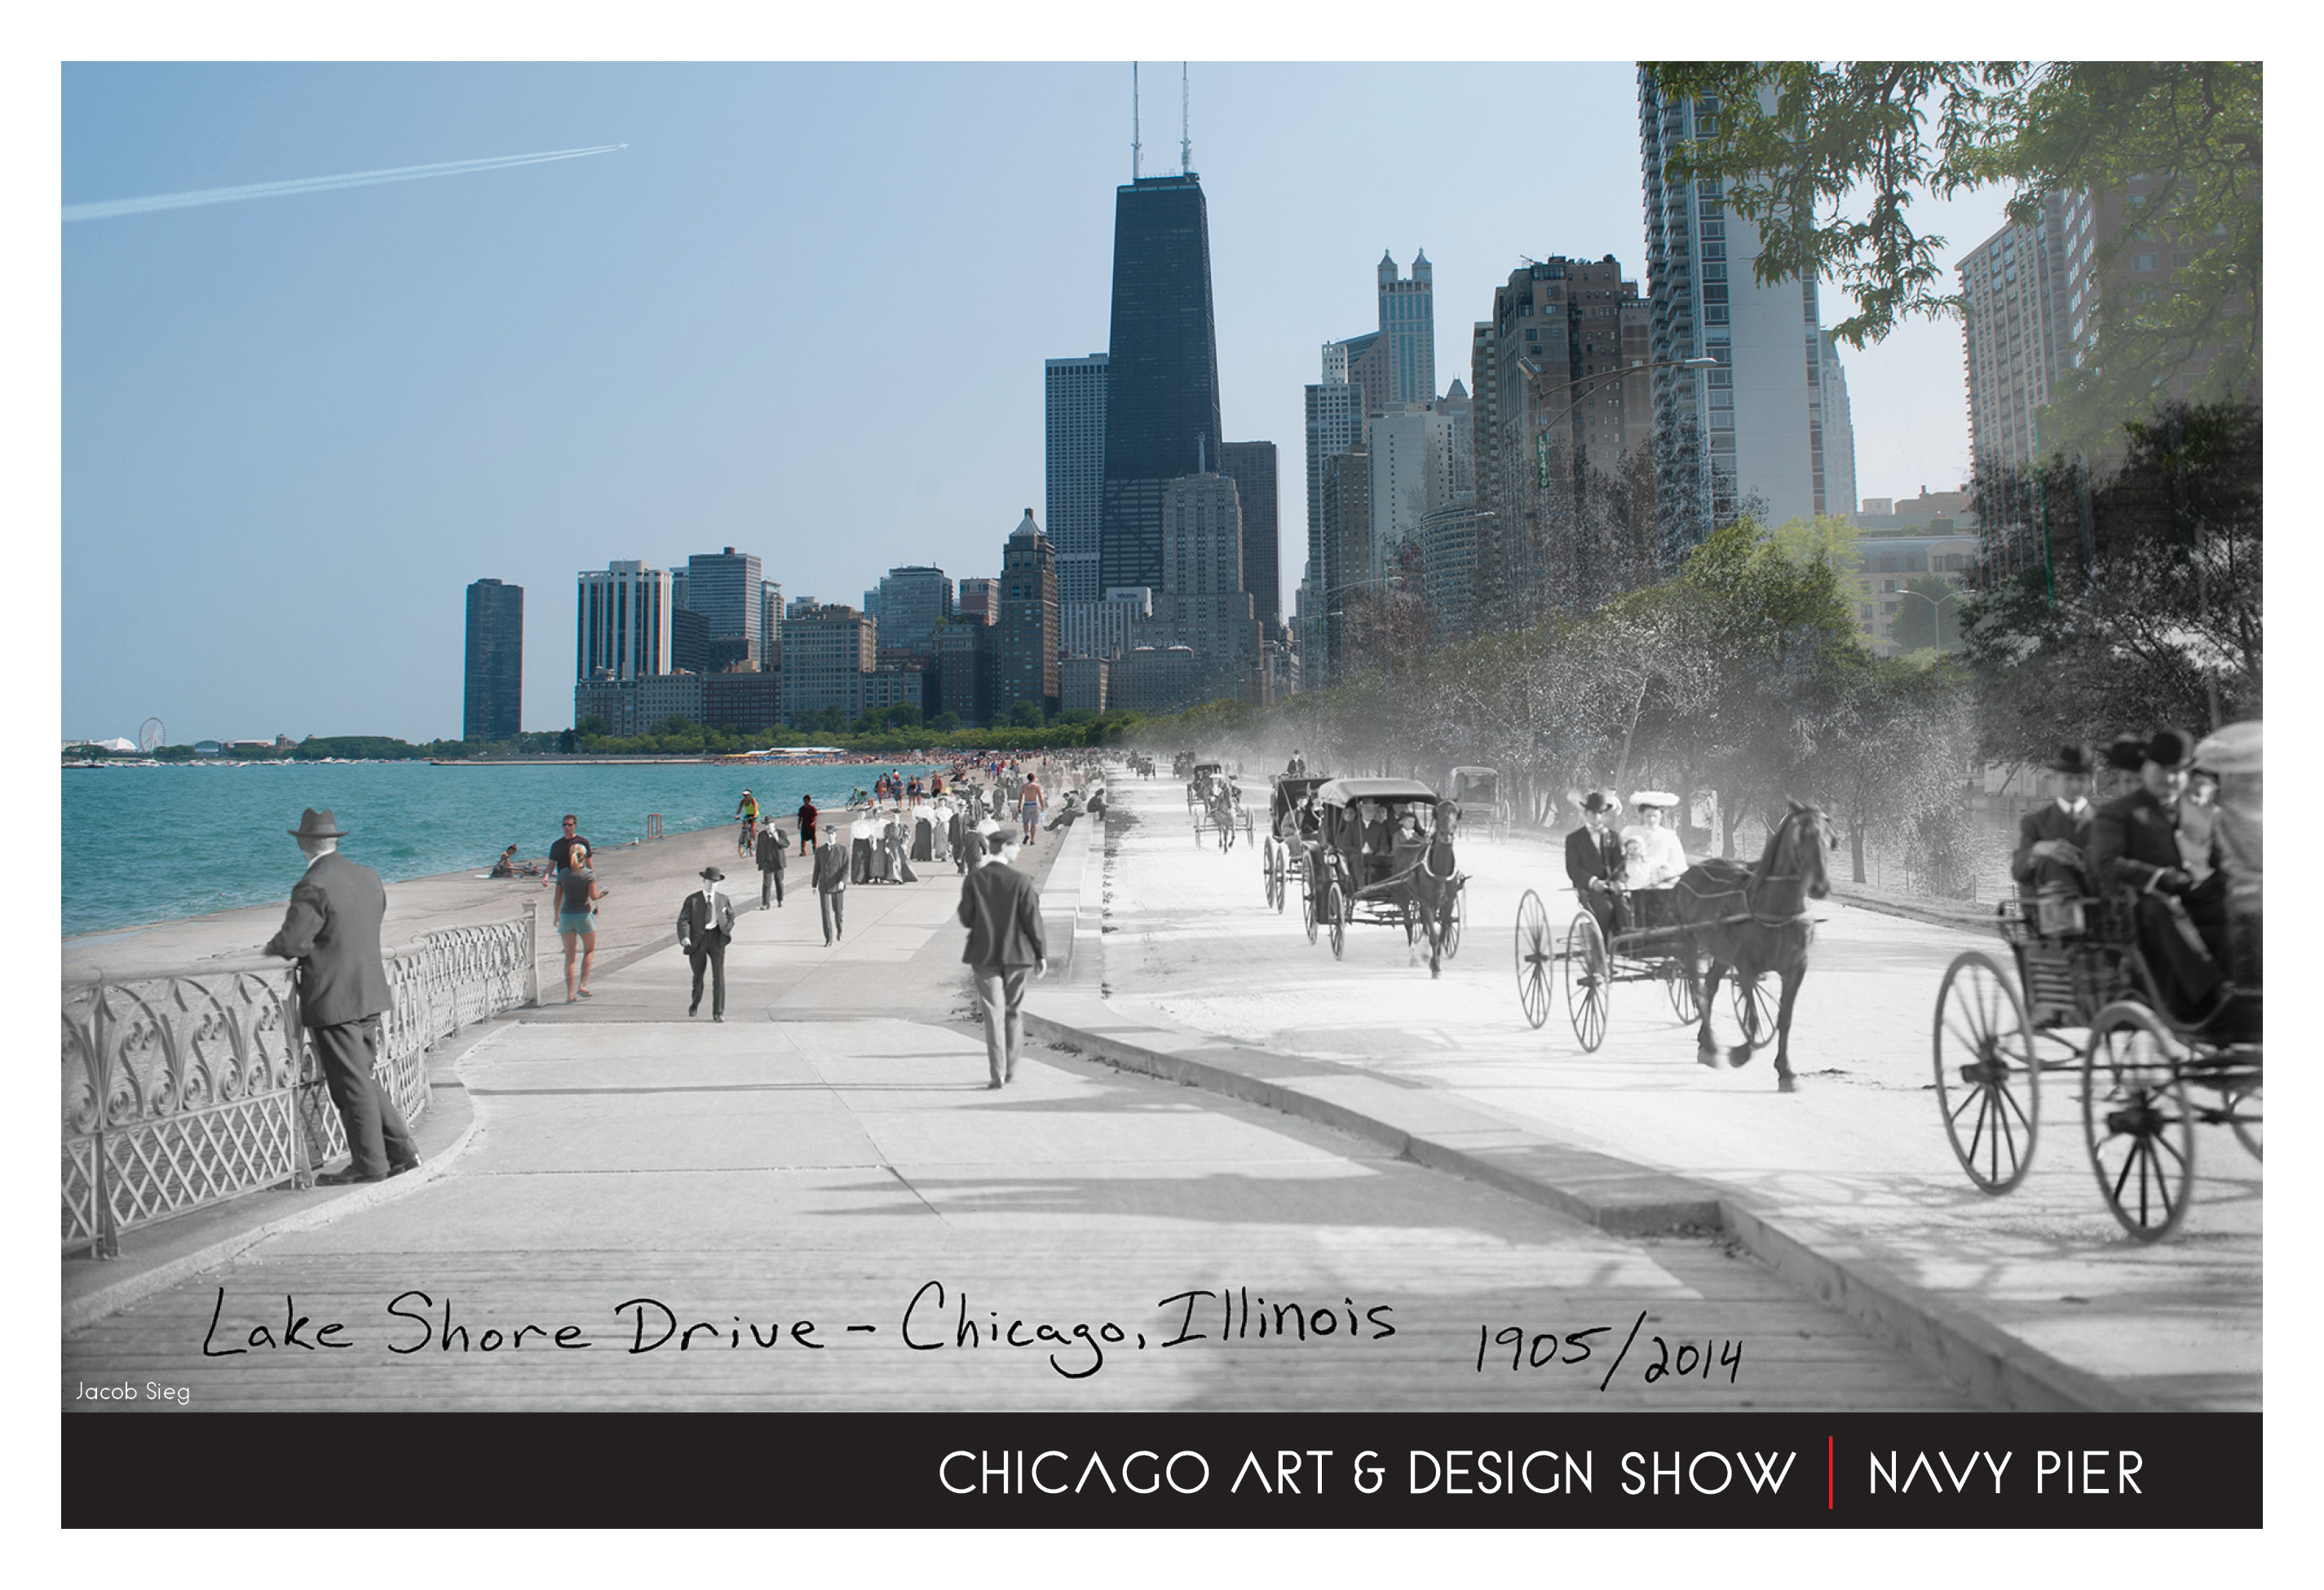 the chicago art design show at navy pier amdur productions the first 100 attendees to the show on saturday will receive a free festival poster featuring artist jacob sieg he will be available to sign his poster